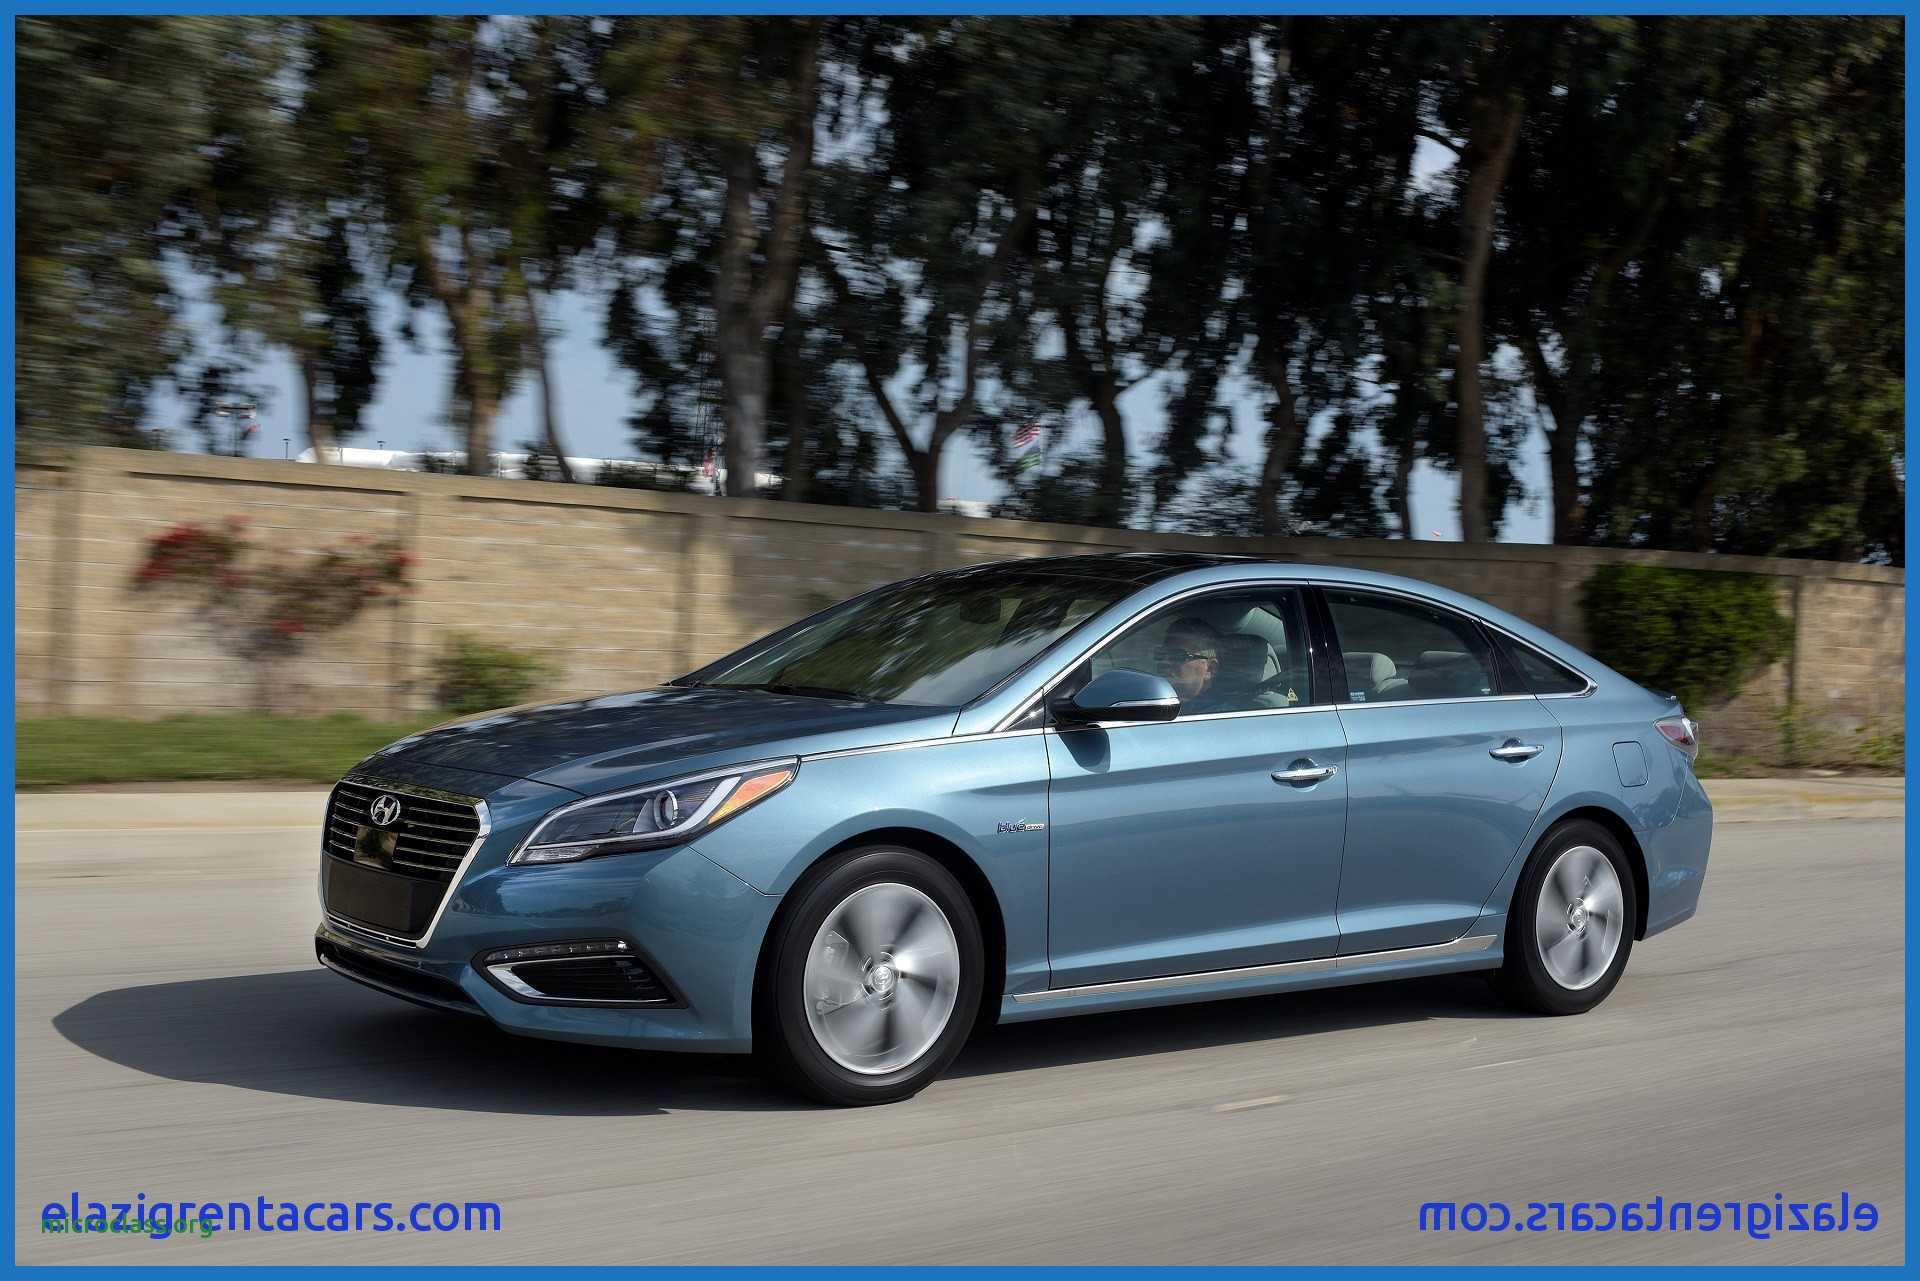 22 Best Review 2020 Buick Regal Gs Coupe Exterior and Interior with 2020 Buick Regal Gs Coupe